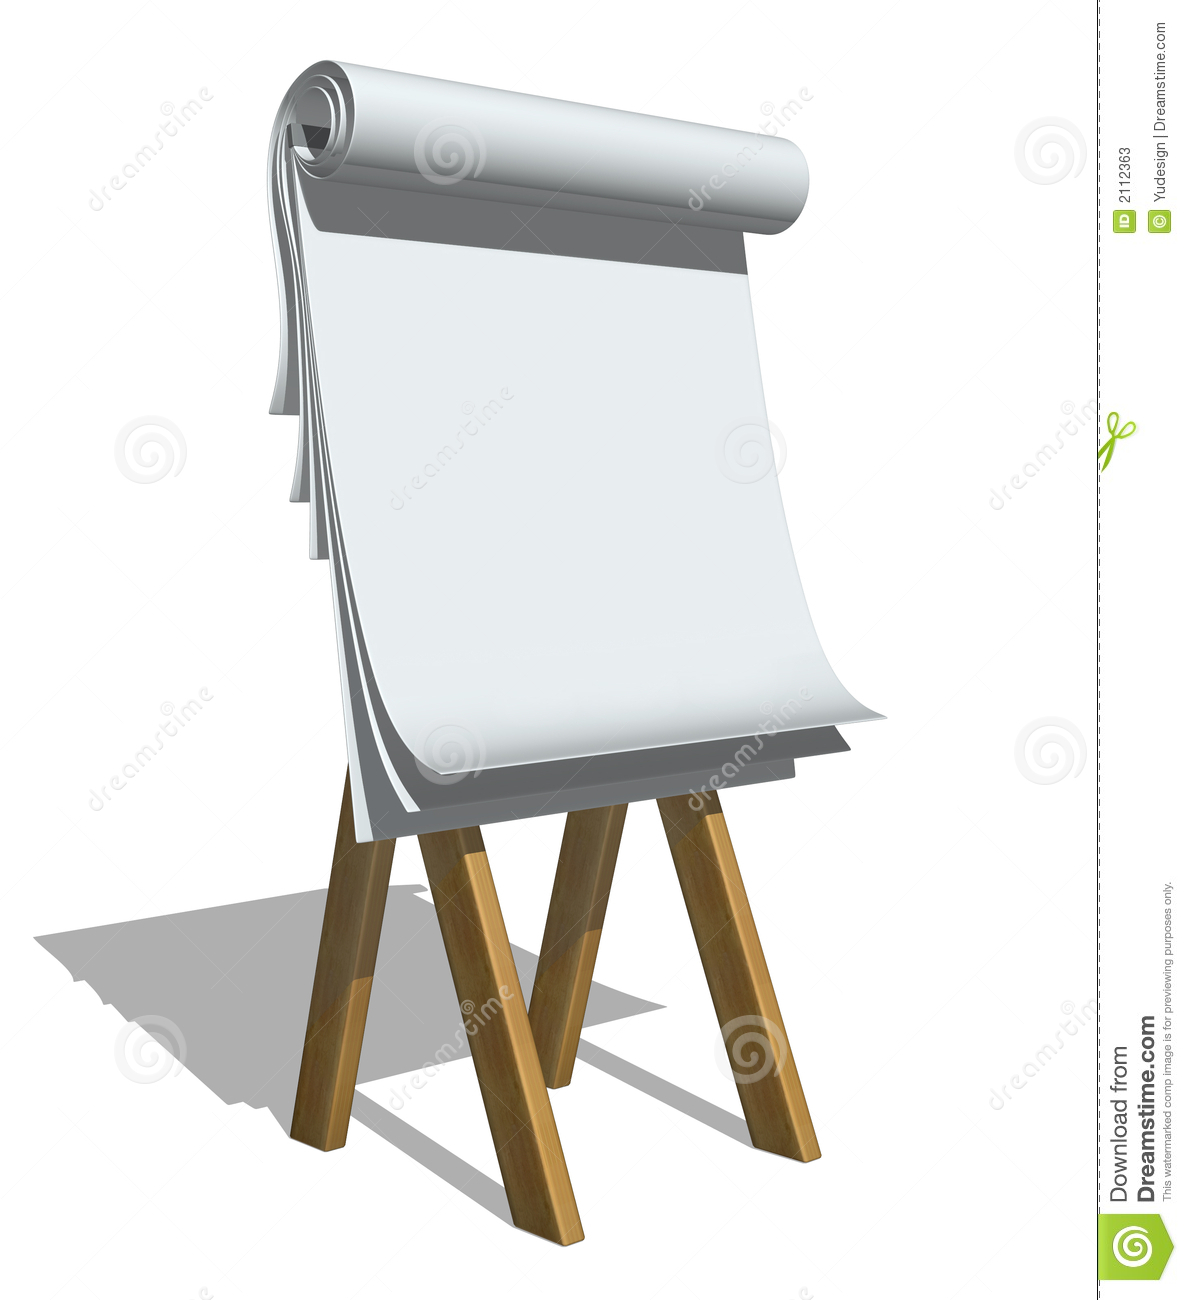 paperboard stock illustration image of rendered  open reminder clip art images reminder clipart png